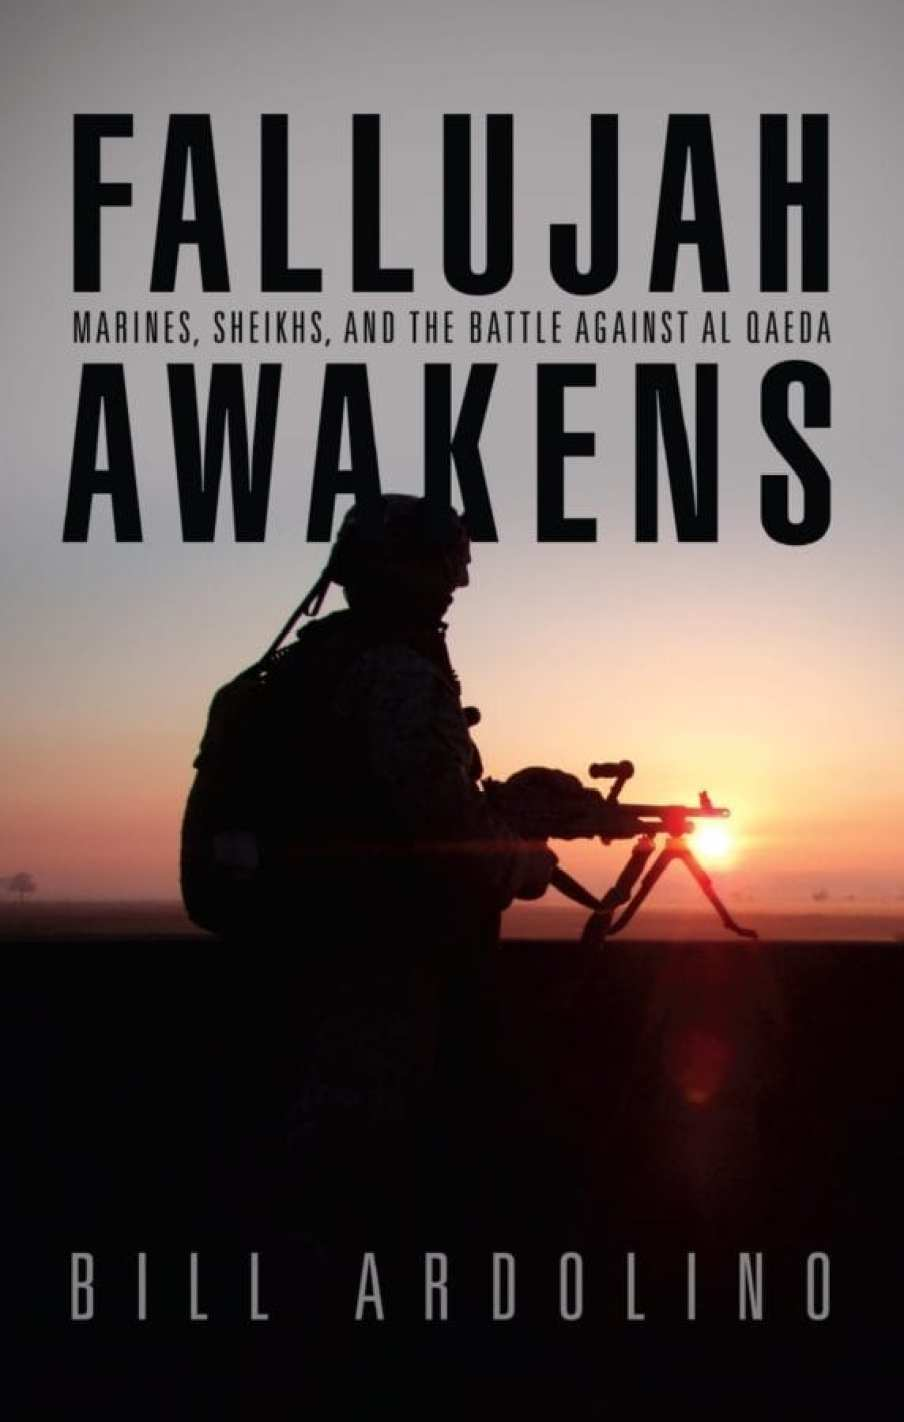 Fallujah Awakens: Marines, Sheiks, and the Battle Against al Qaeda